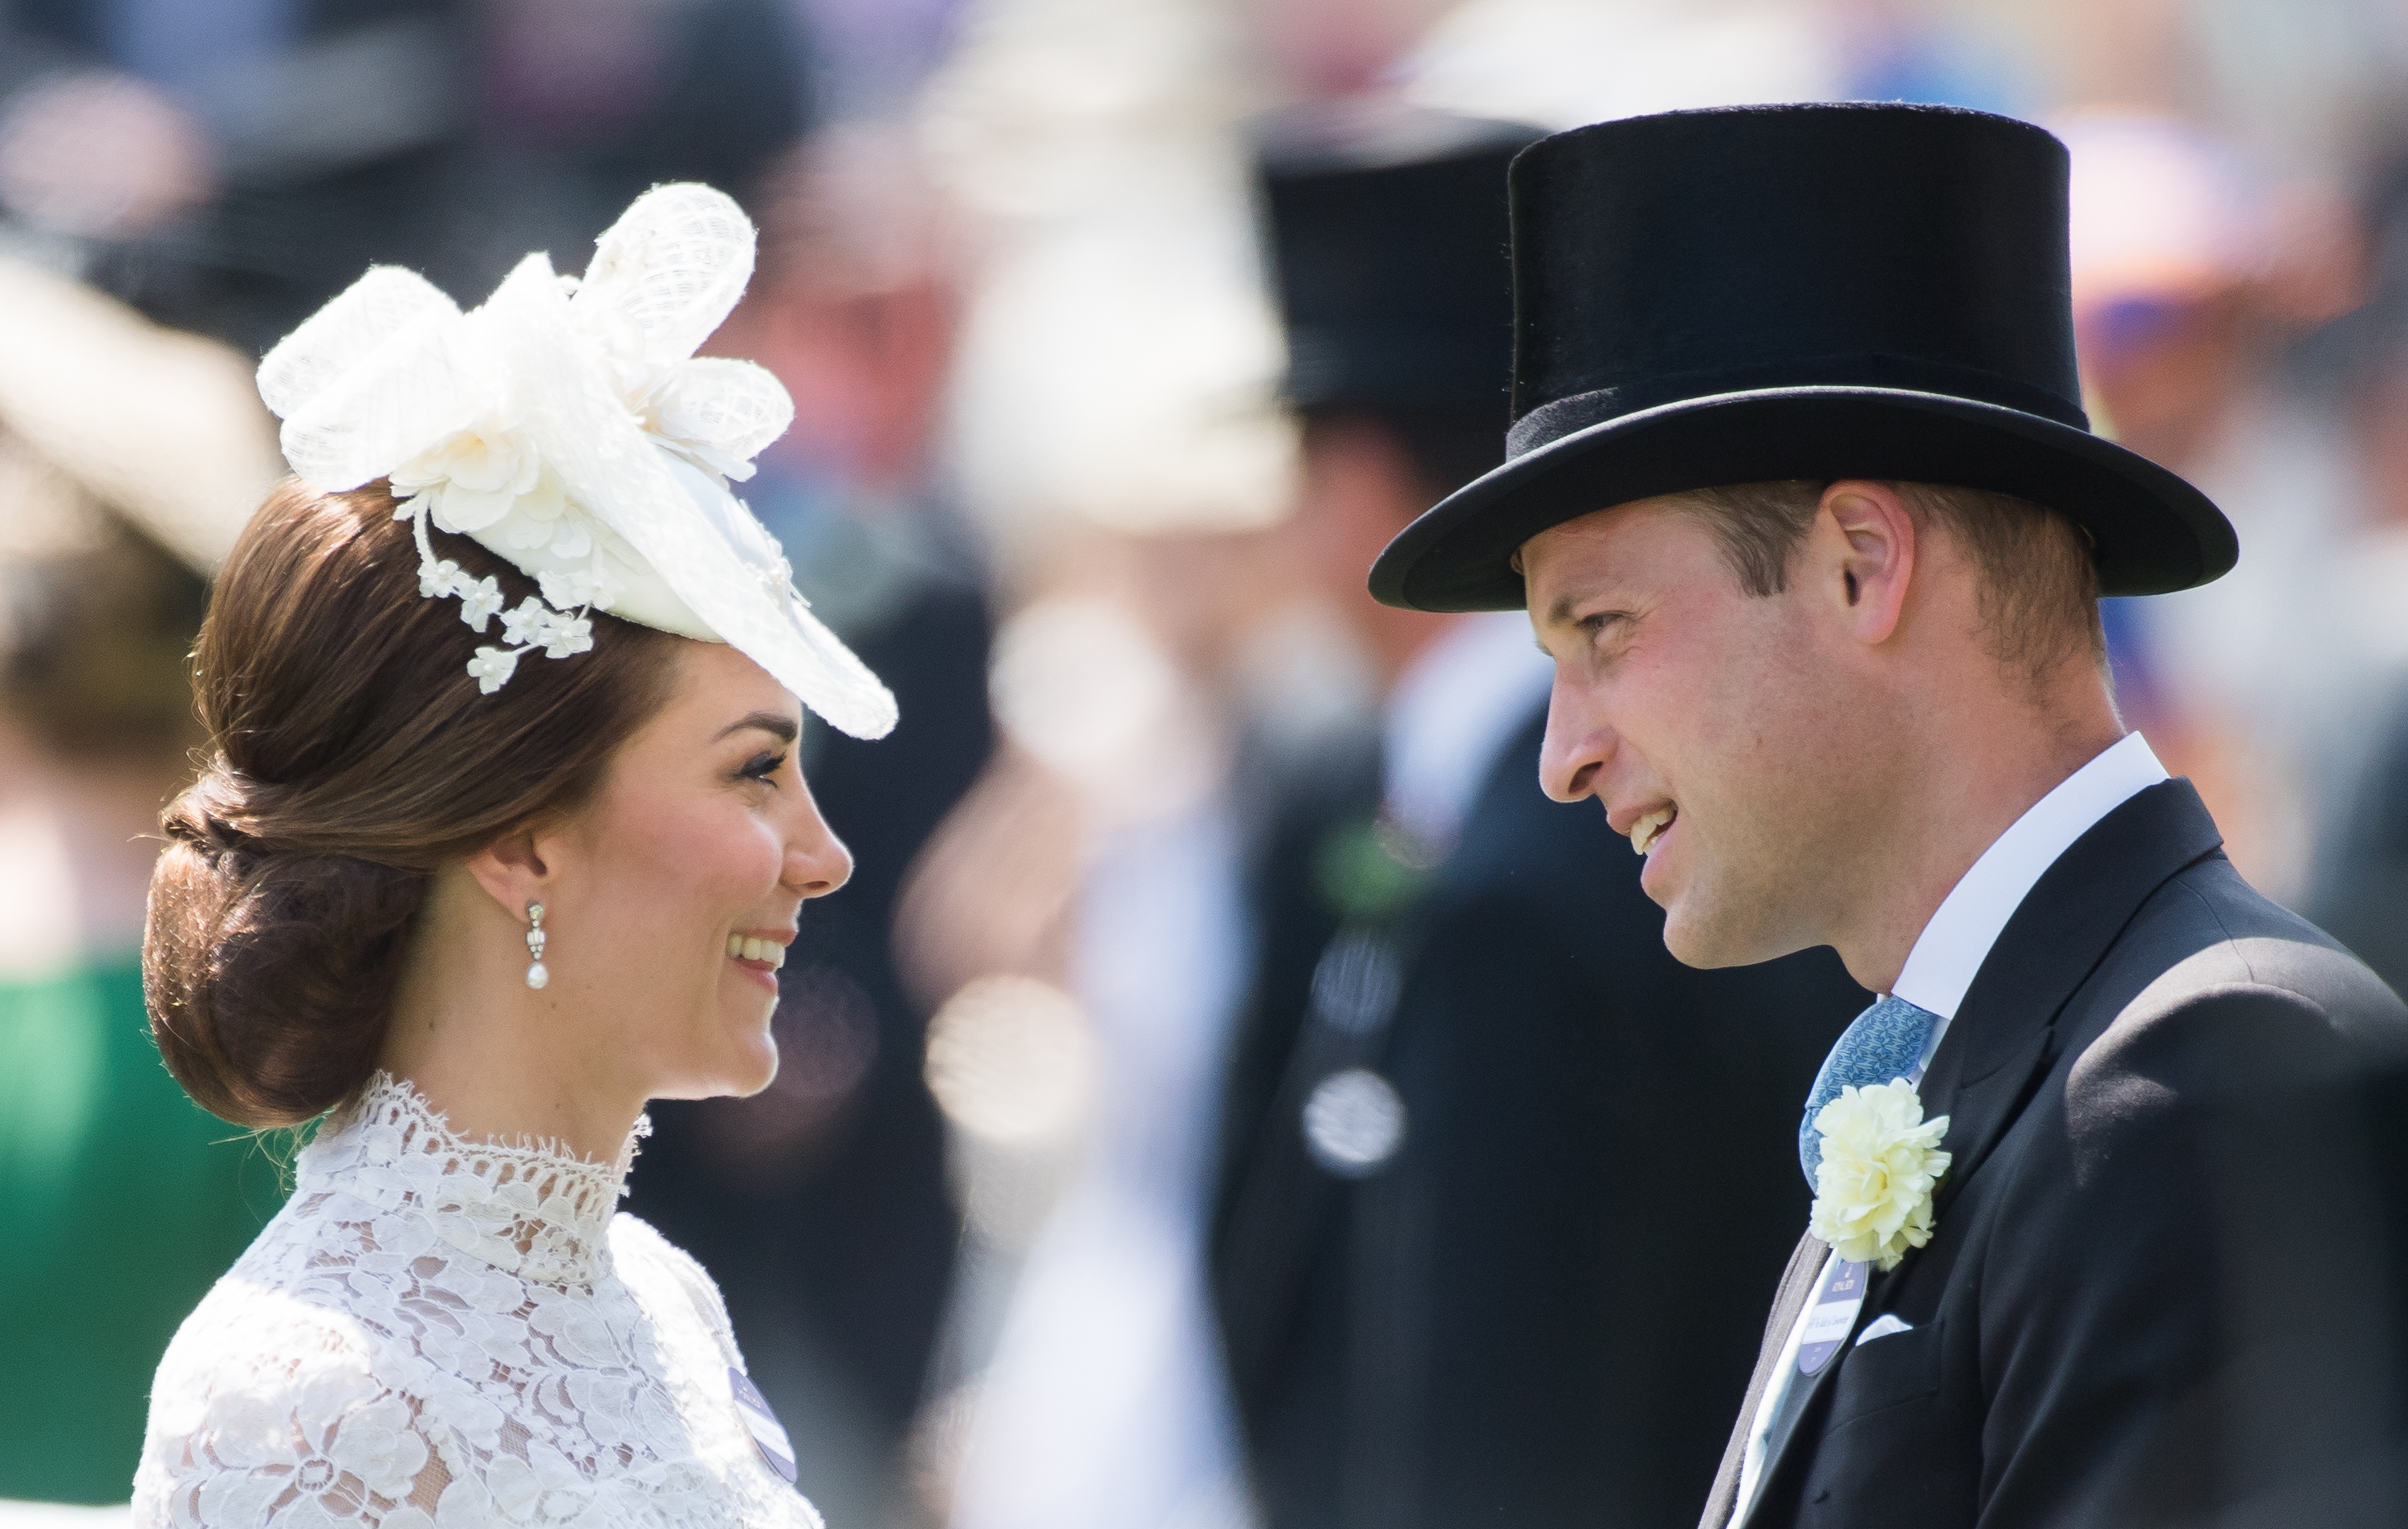 Kate Middleton's Royal Ascot Dress Resembles Her Wedding Gown